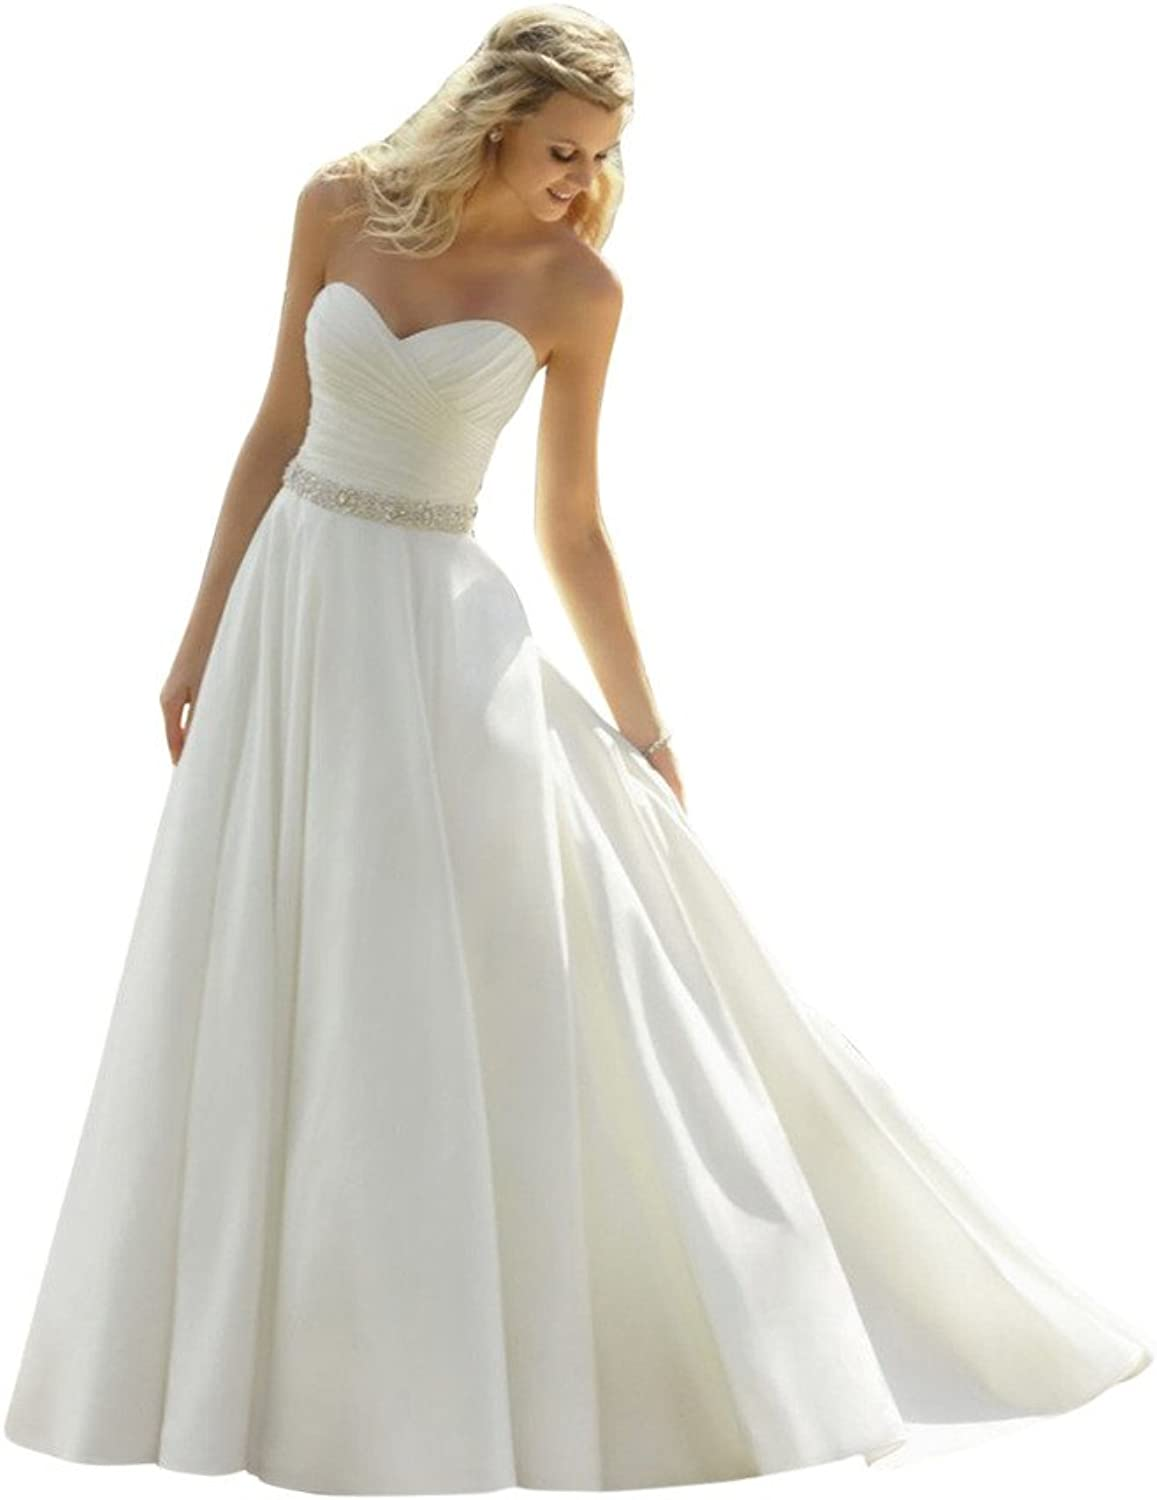 JoyVany Women's Sweetheart Satin Wedding Dress Bridal Gown with Beading Belt